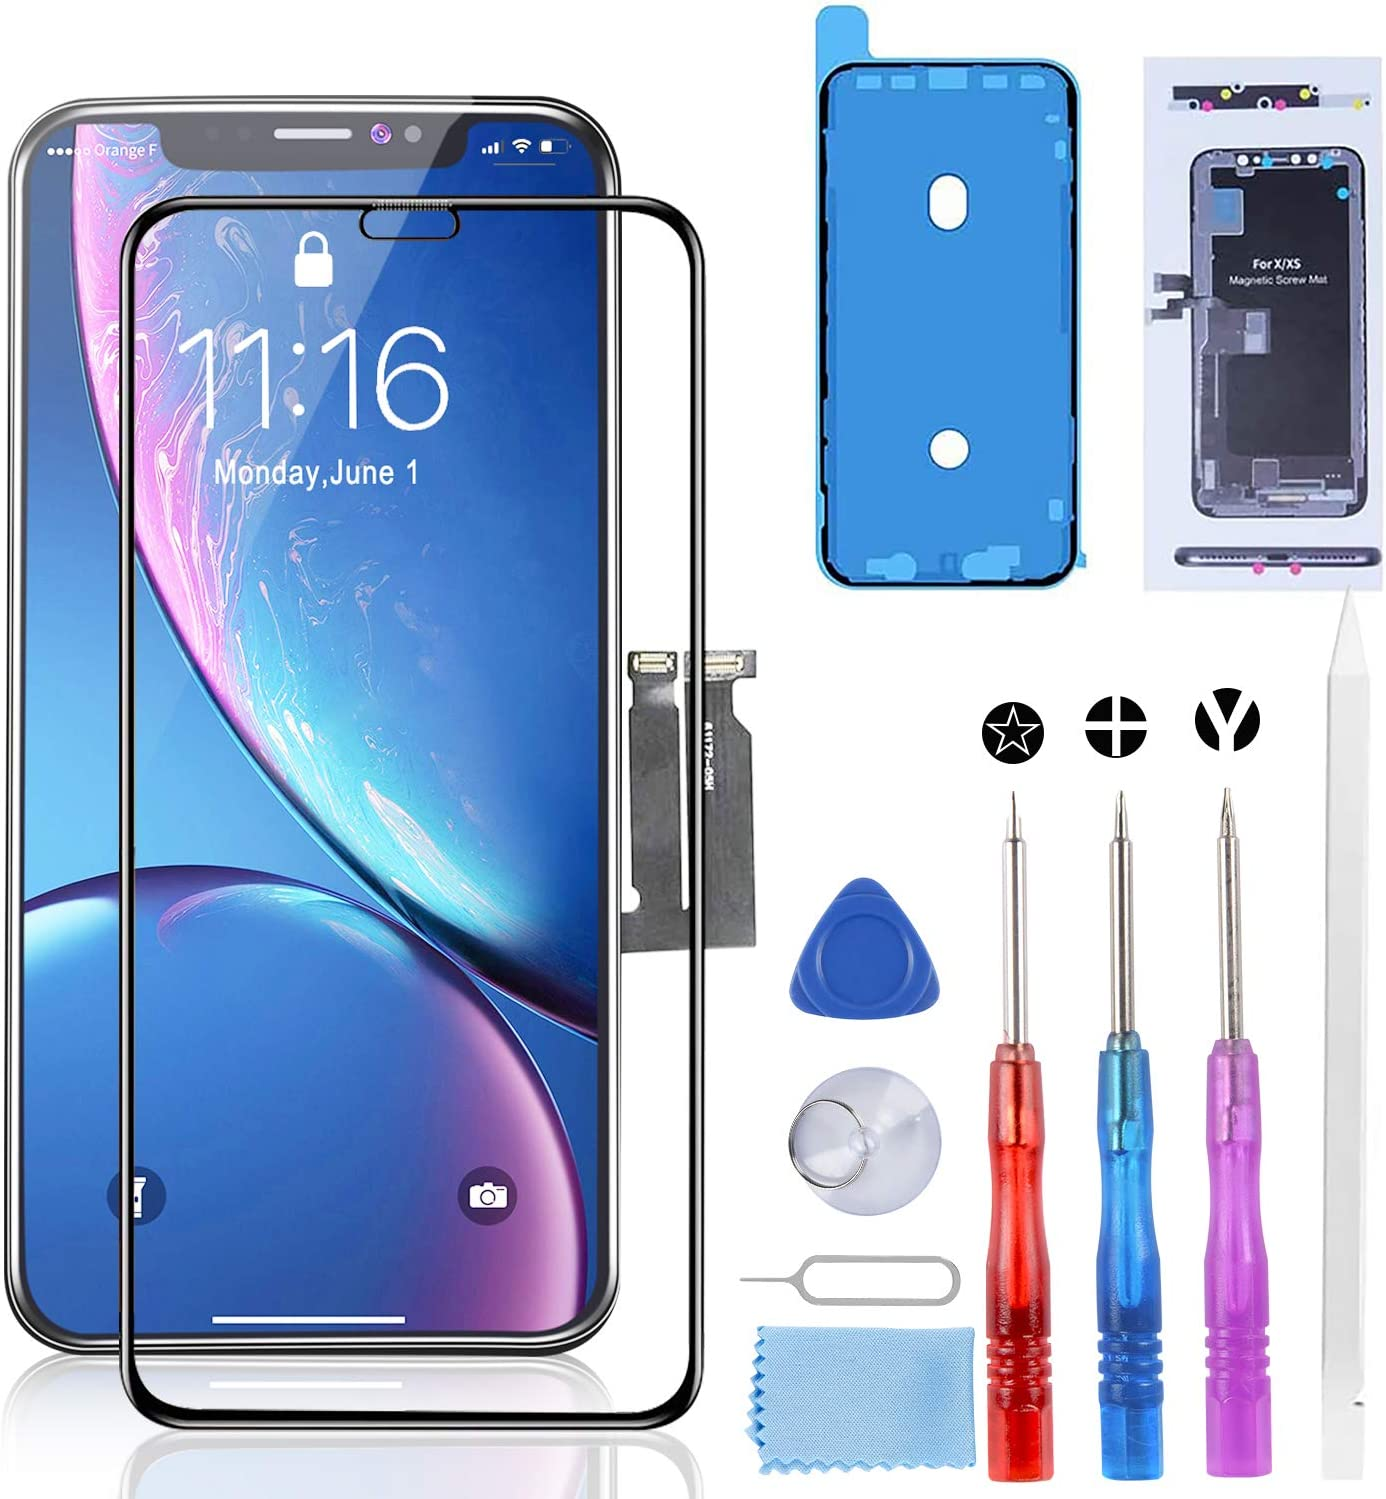 YPLANG for iPhone XR Screen Original Cheap SALE Start Replacement Pantalla Translated iPho